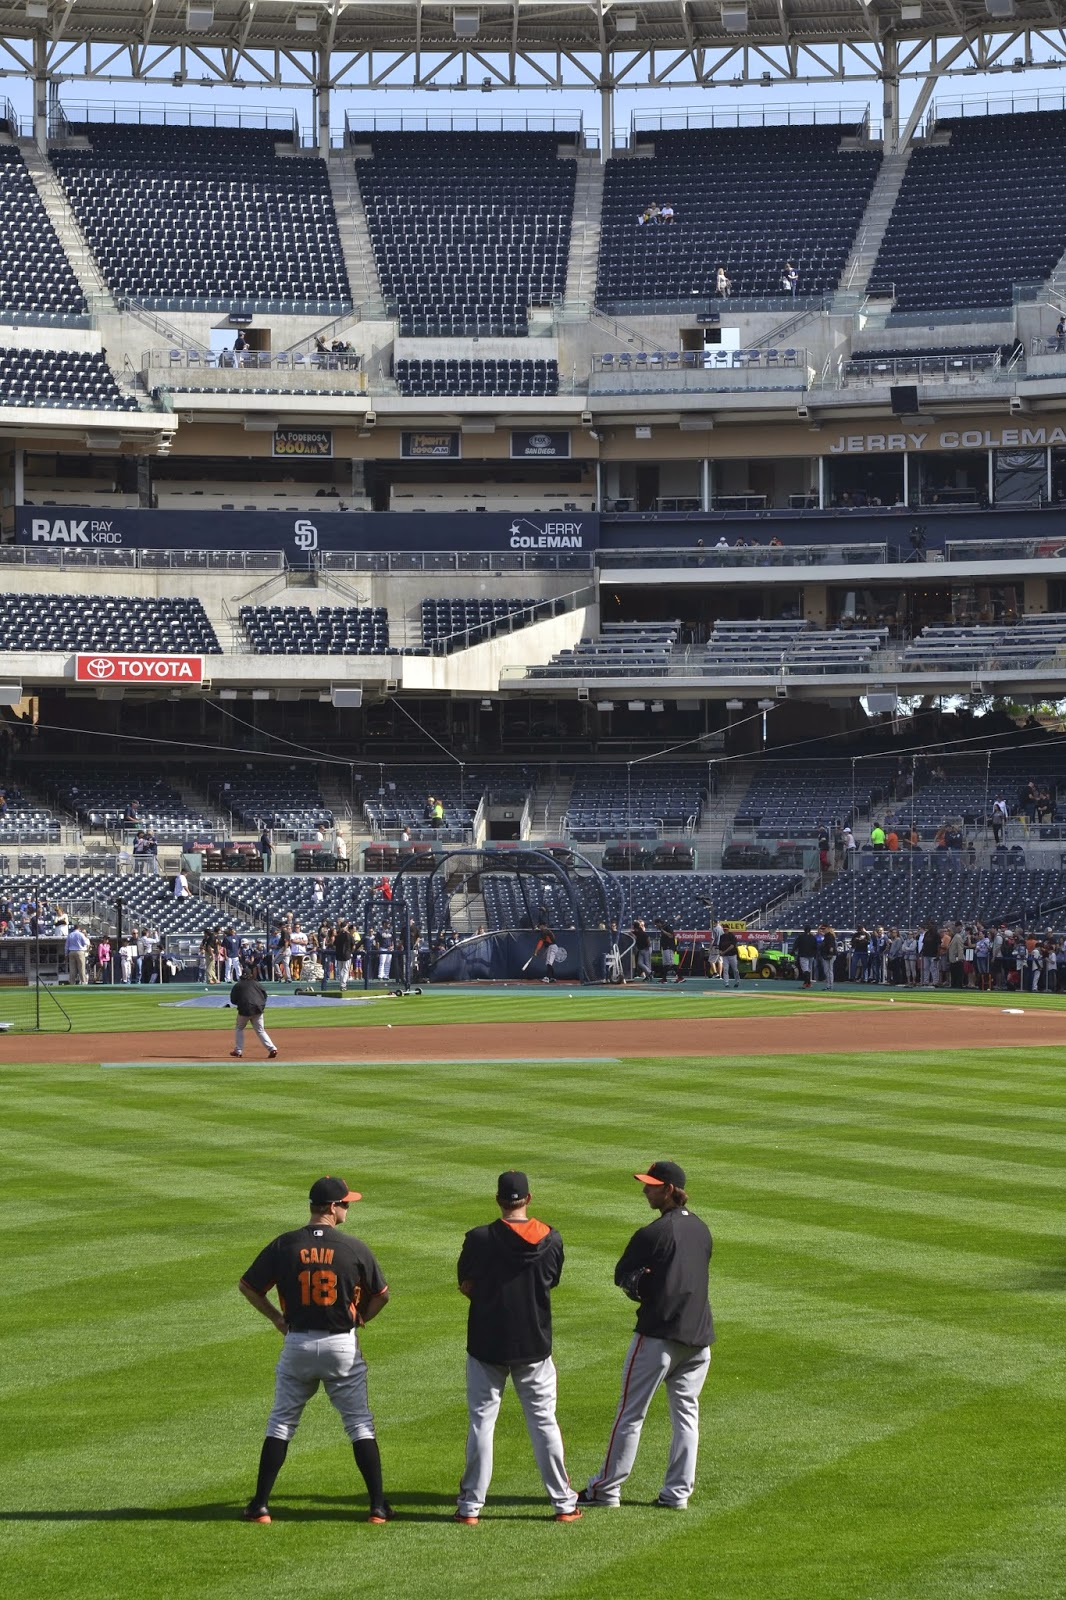 From Foothills to Fog: Giants vs  Padres @ Petco Park